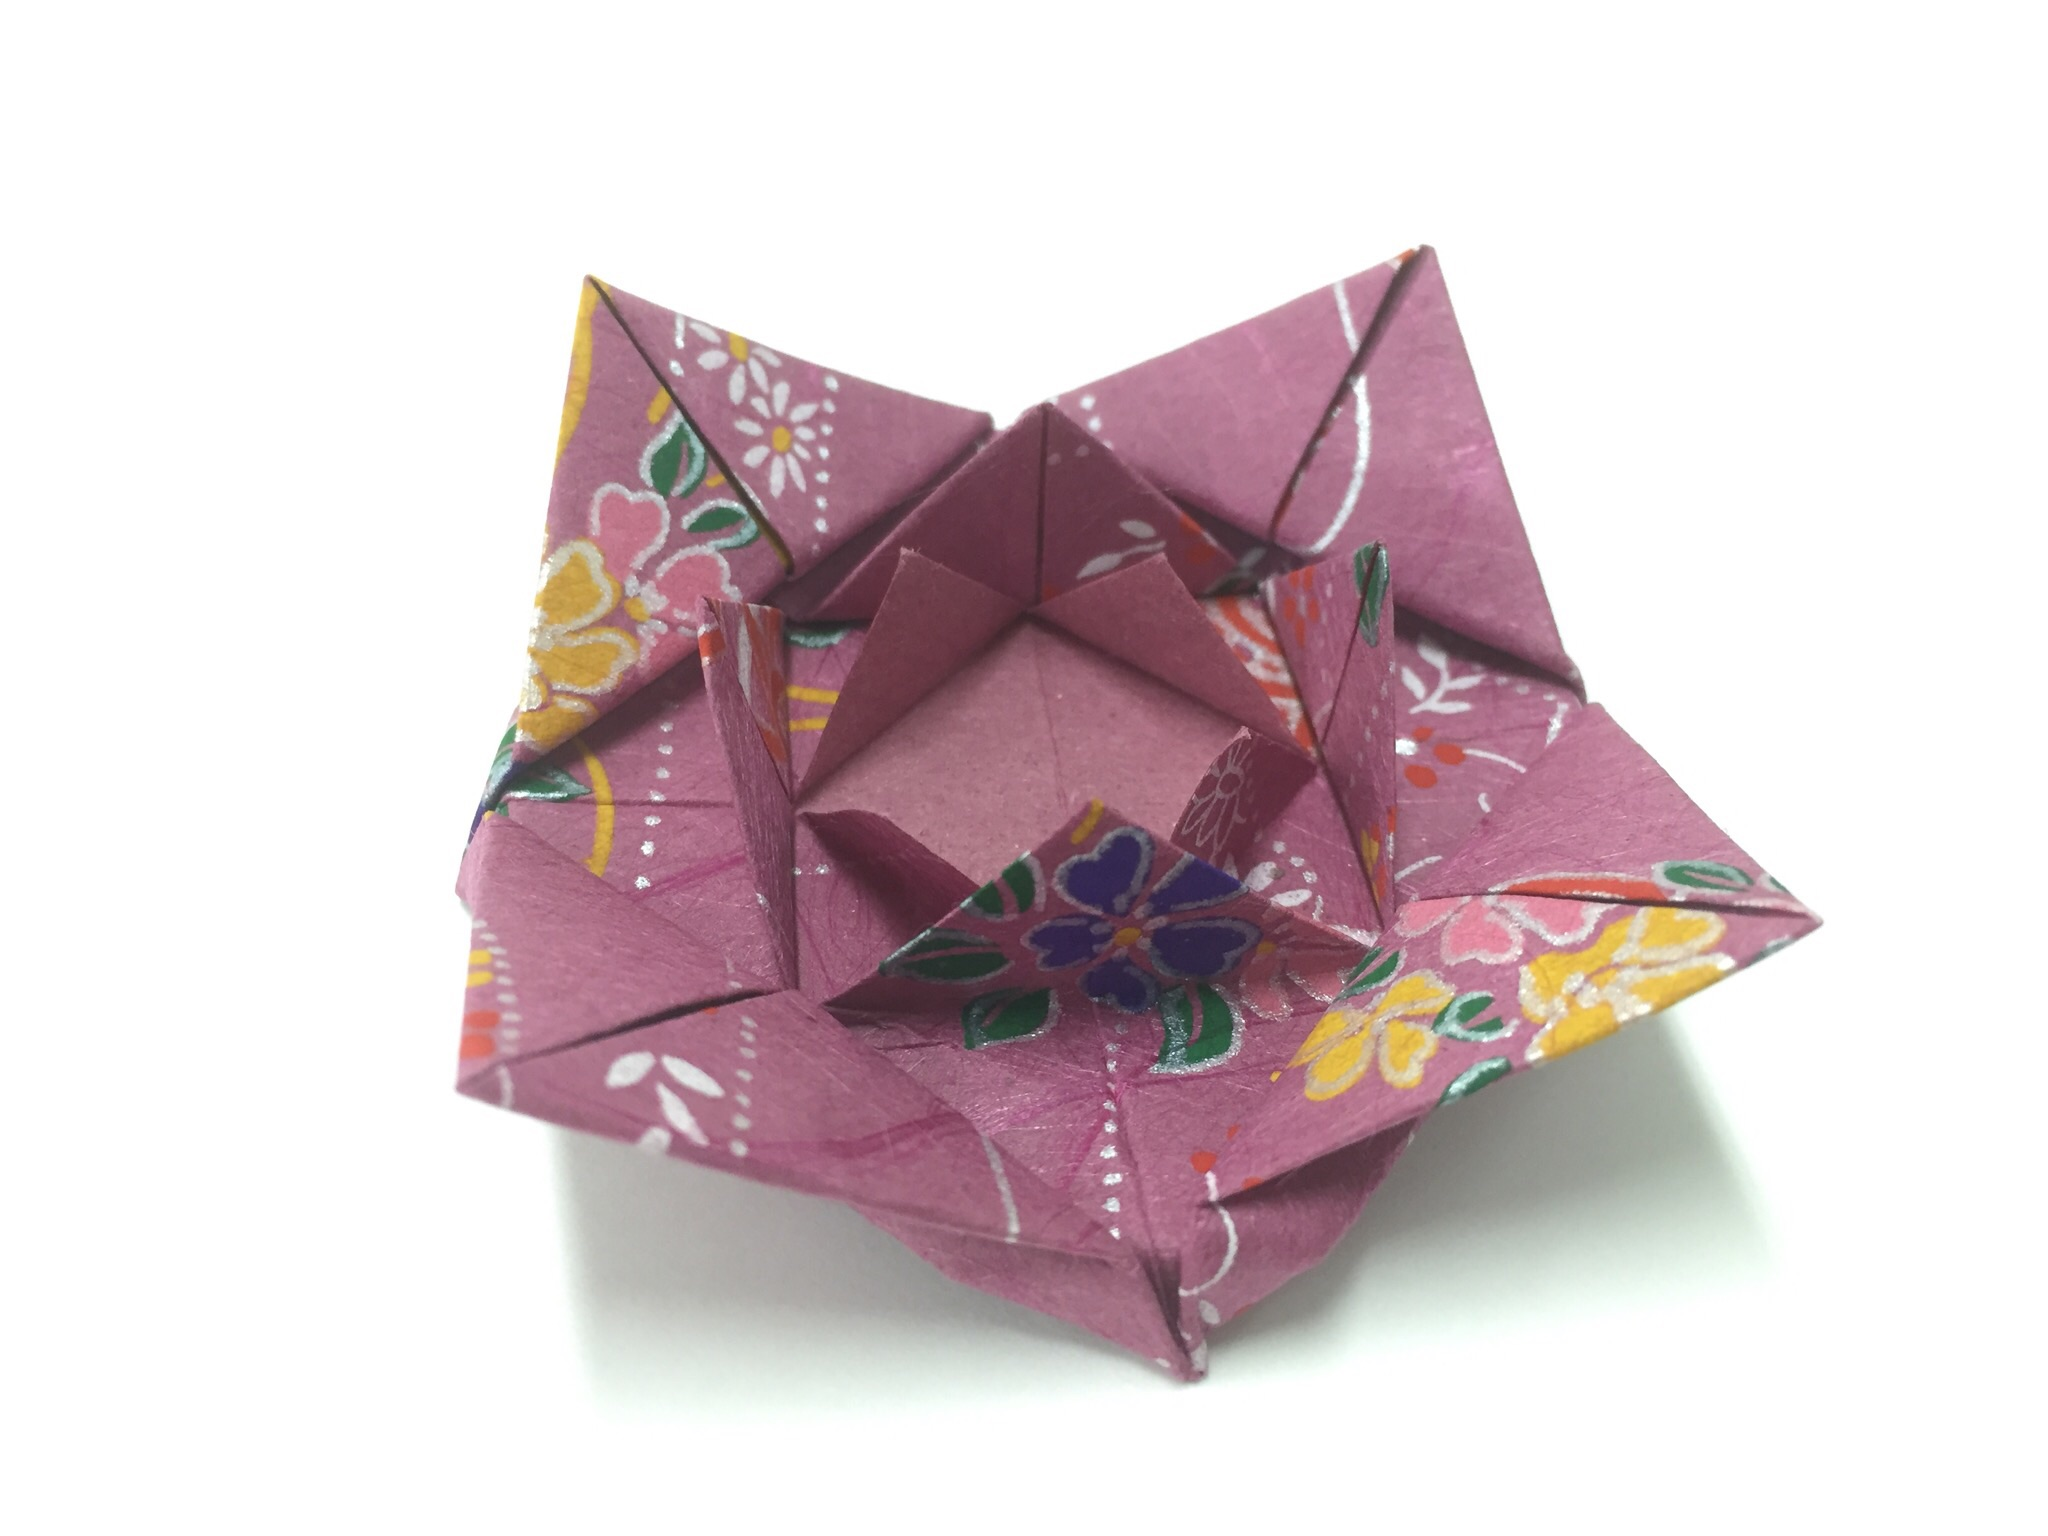 You just learned how to make an origami rose!